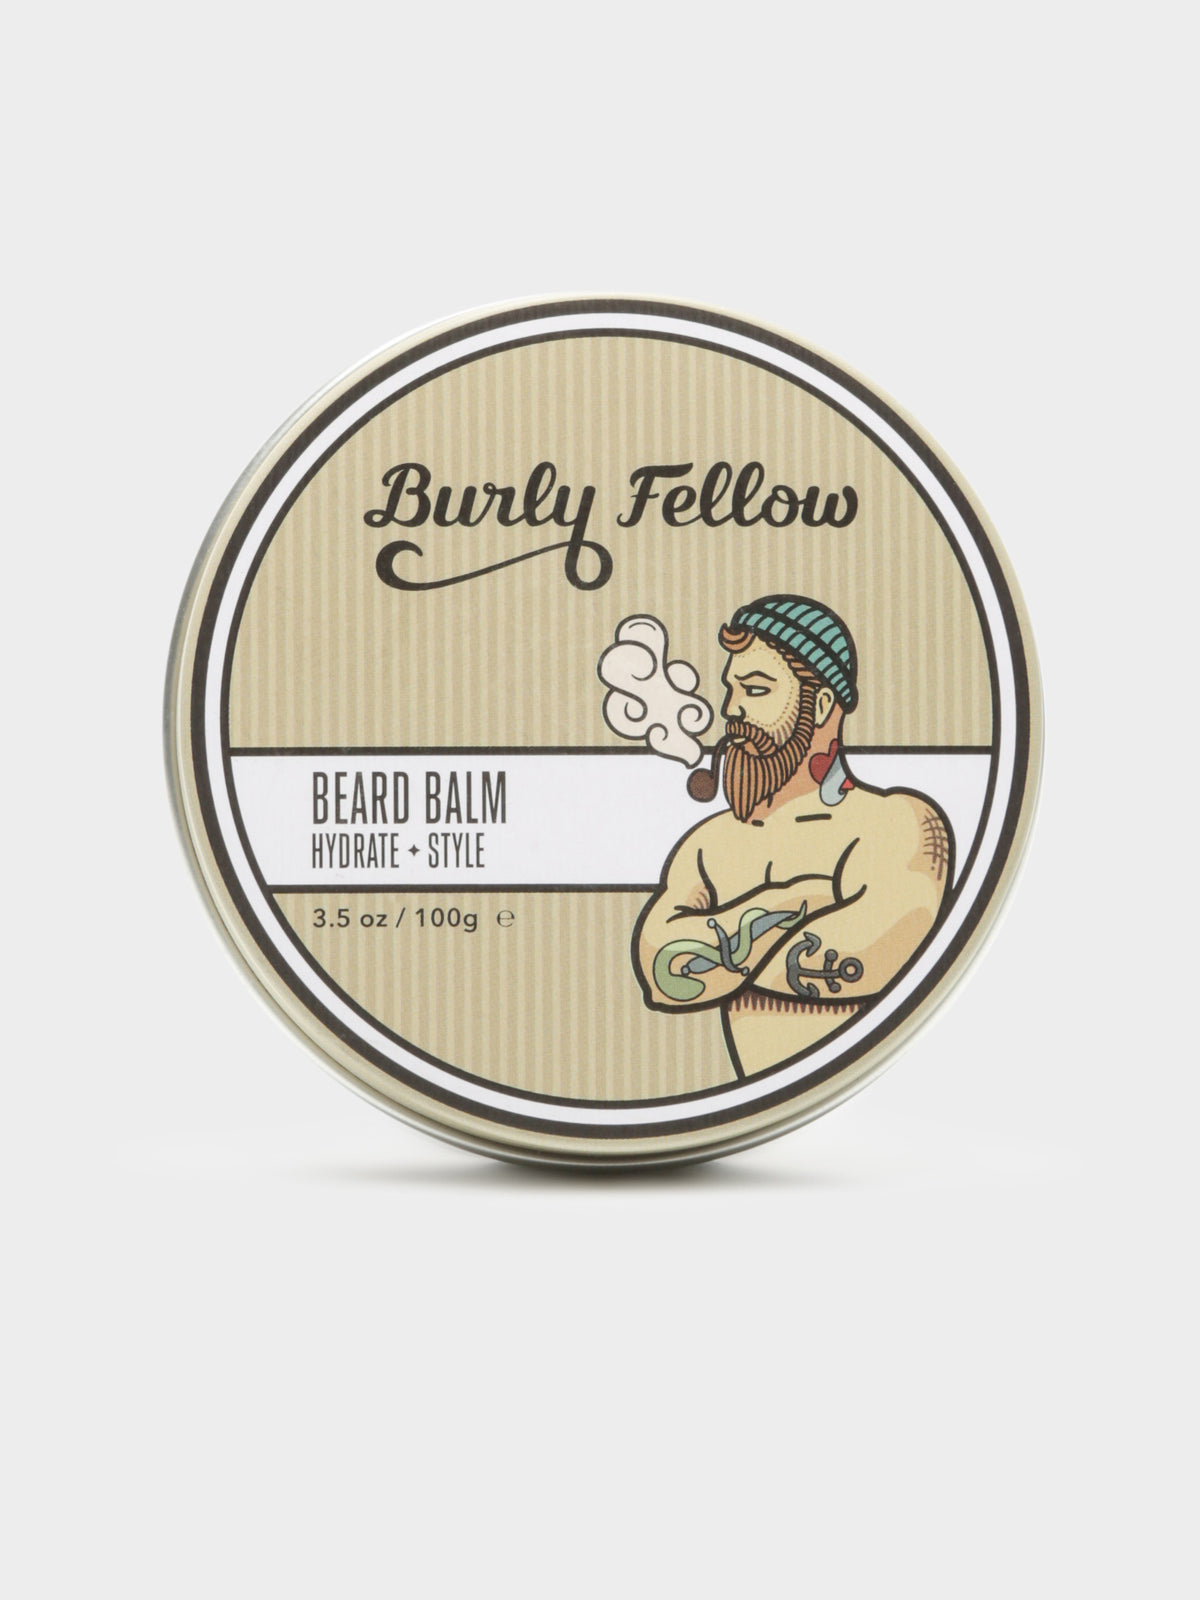 Mens Hyrdrate & Protect Beard Balm in Tobacco and Vanilla Scent